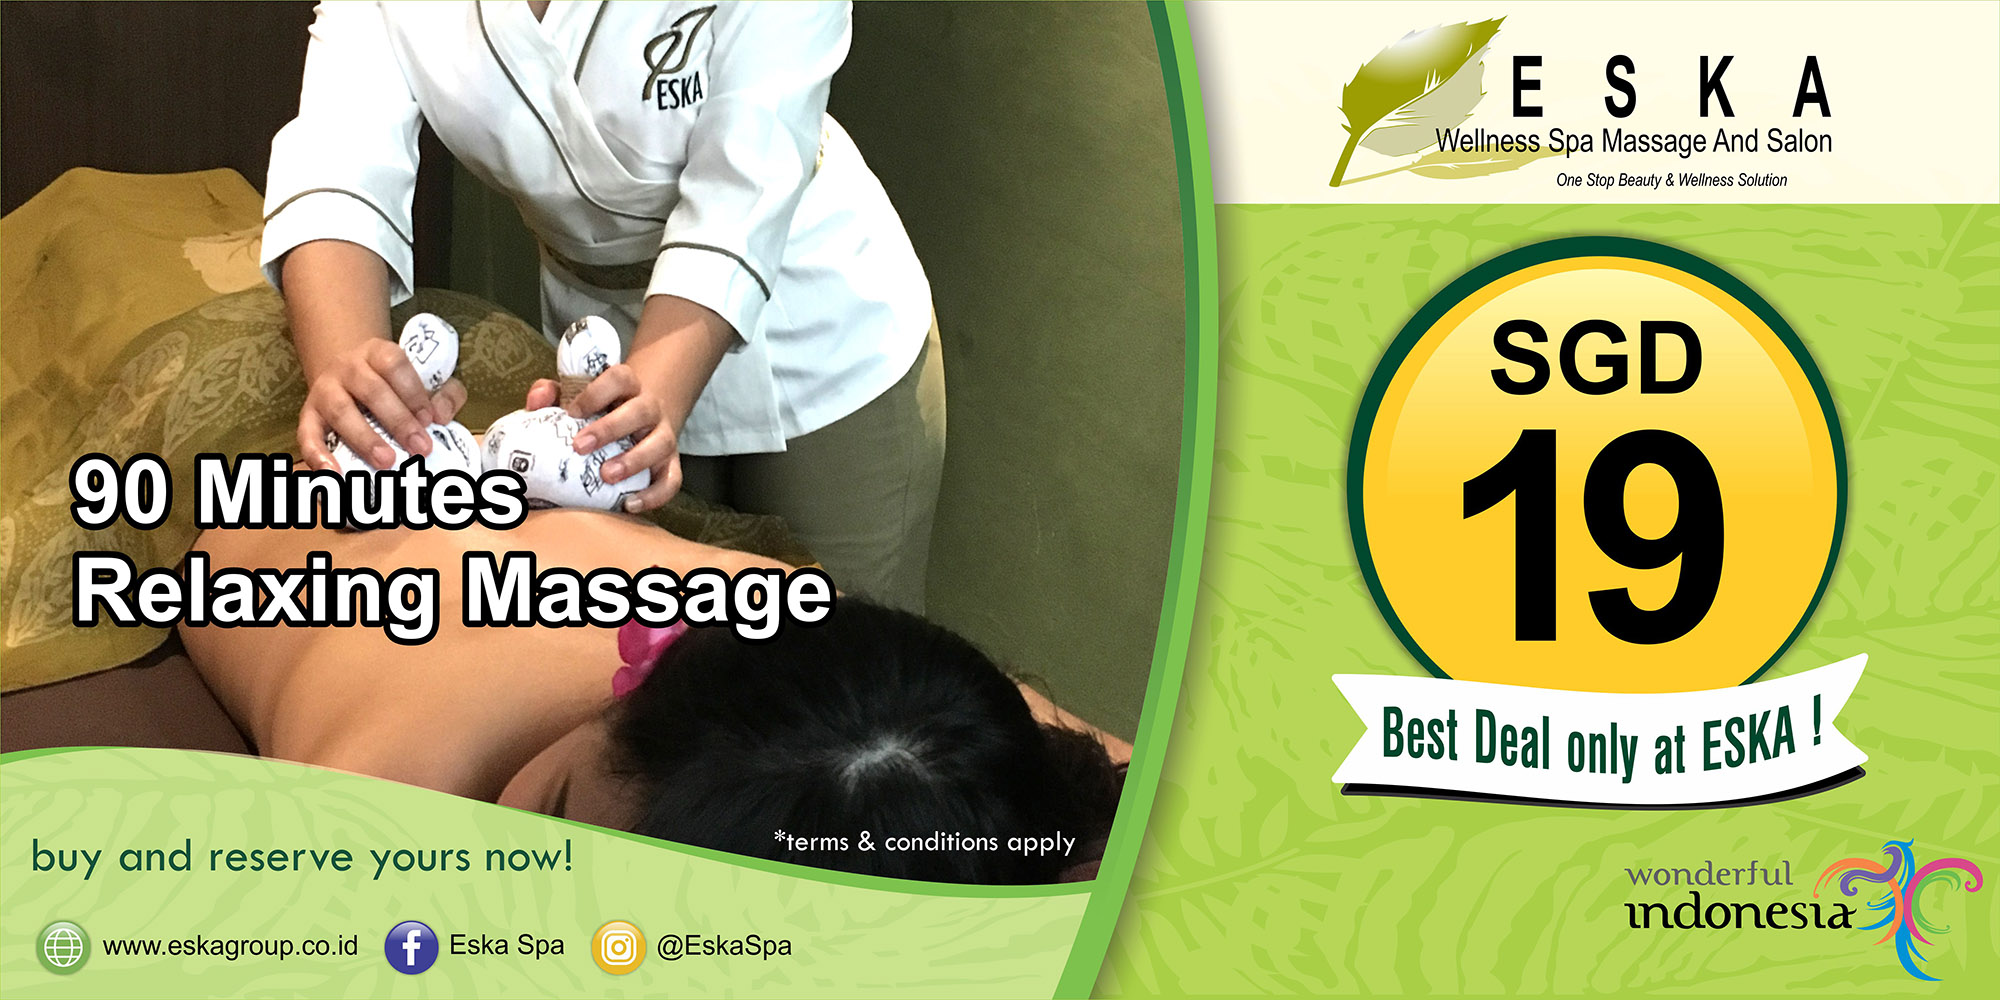 eska group batam 180525-promo-wellness-90-minutes-relaxing-massage-kemenpar-slider